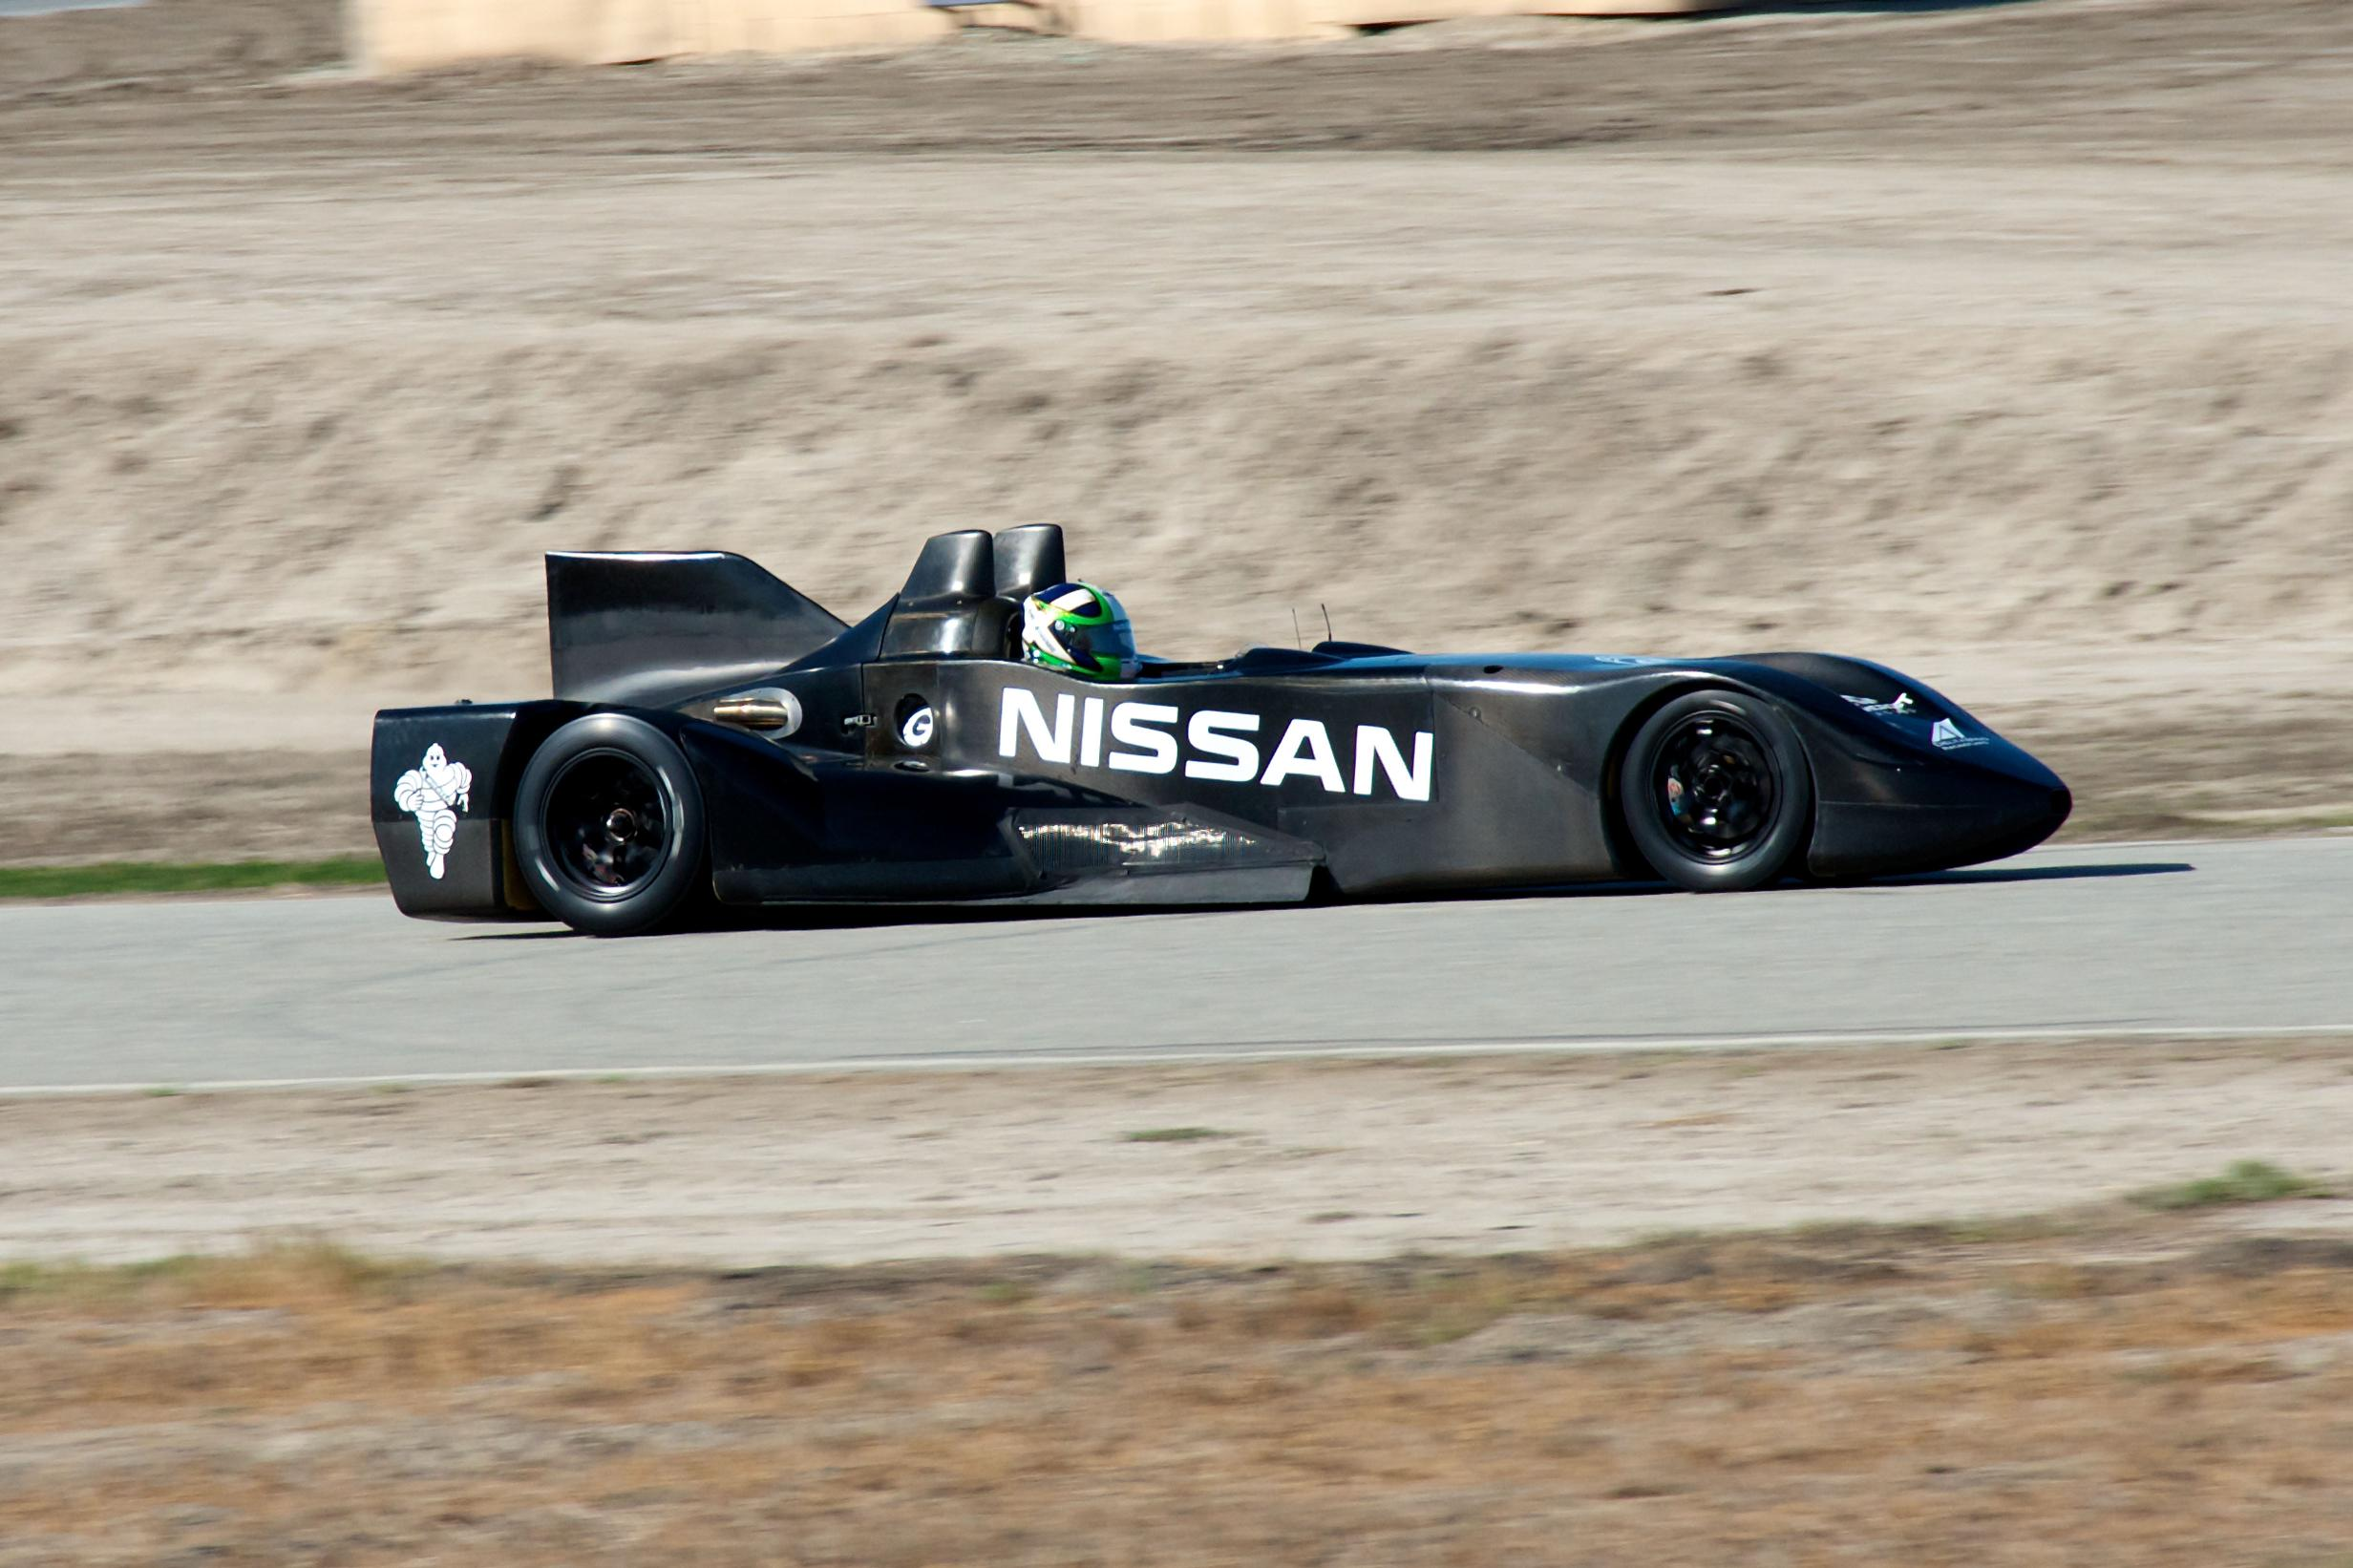 Nissan DeltaWing Batmobile Driving